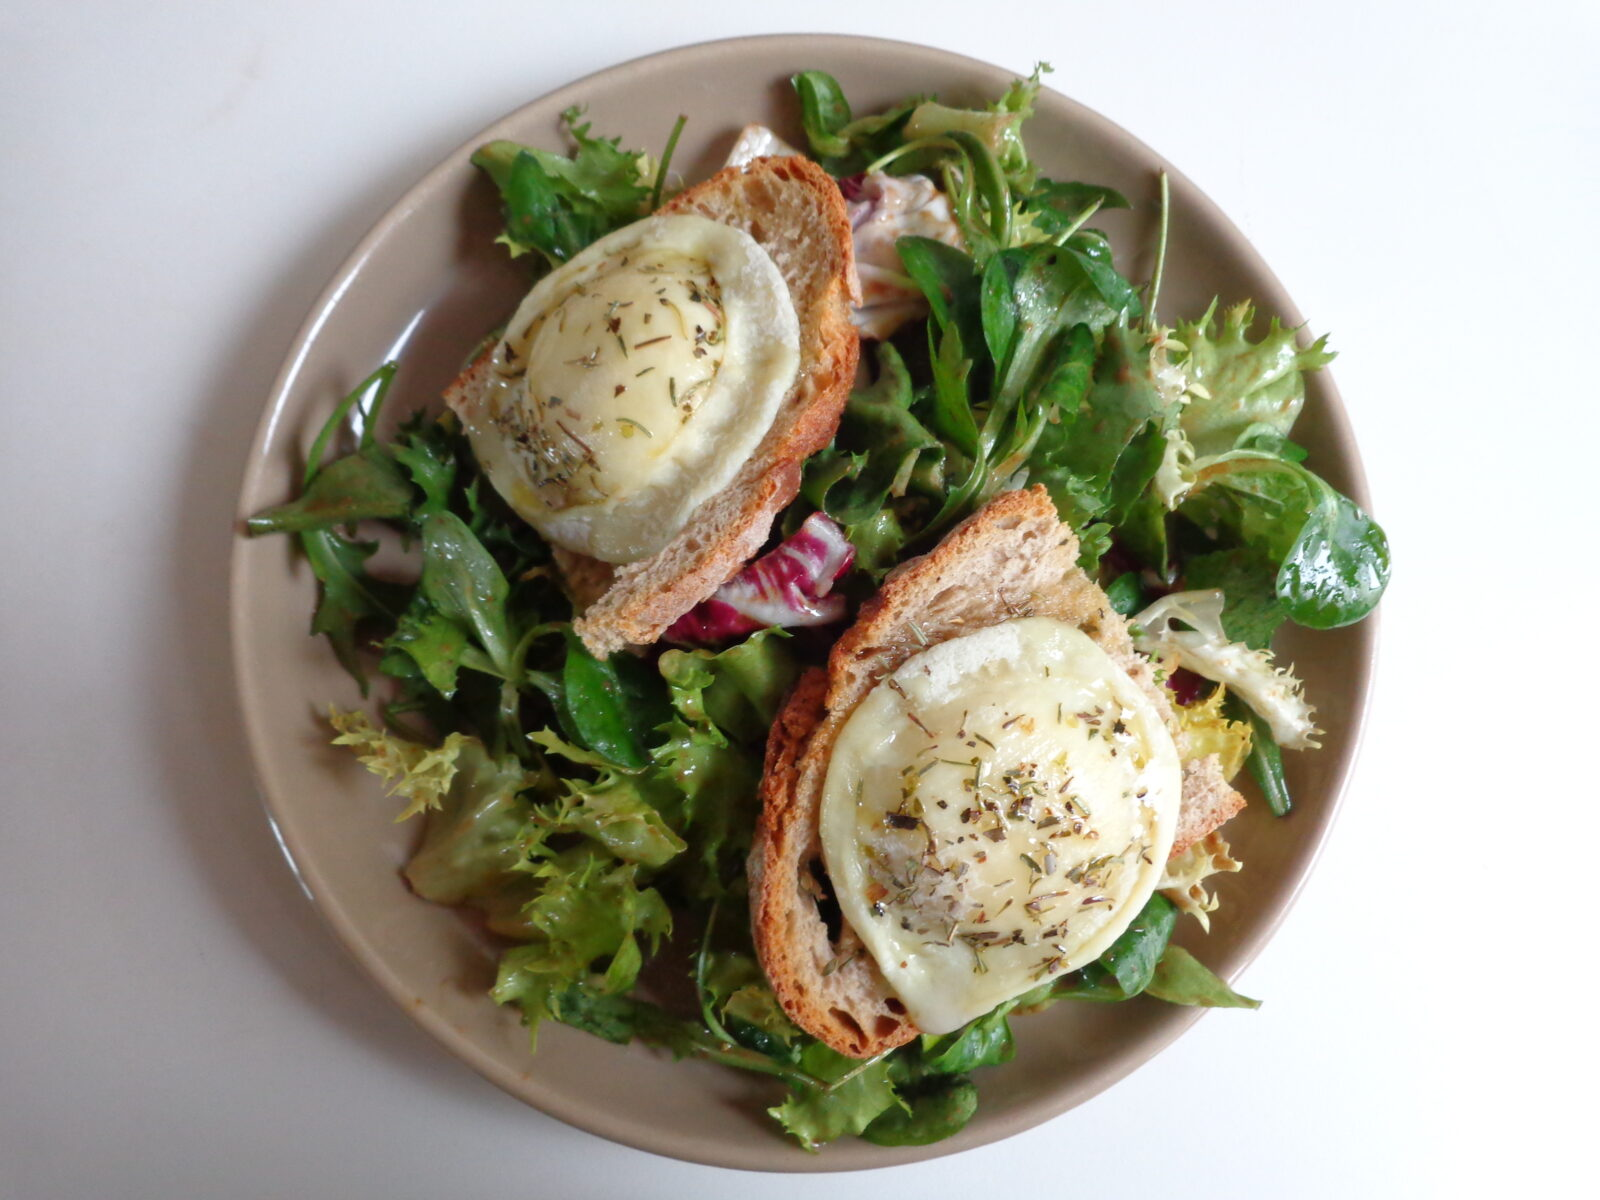 https://https://everydayfrenchchef.com/wp-content/uploads/2014/01/goat-cheese-salad2.jpg/wp-content/uploads/2014/01/goat-cheese-salad2.jpg